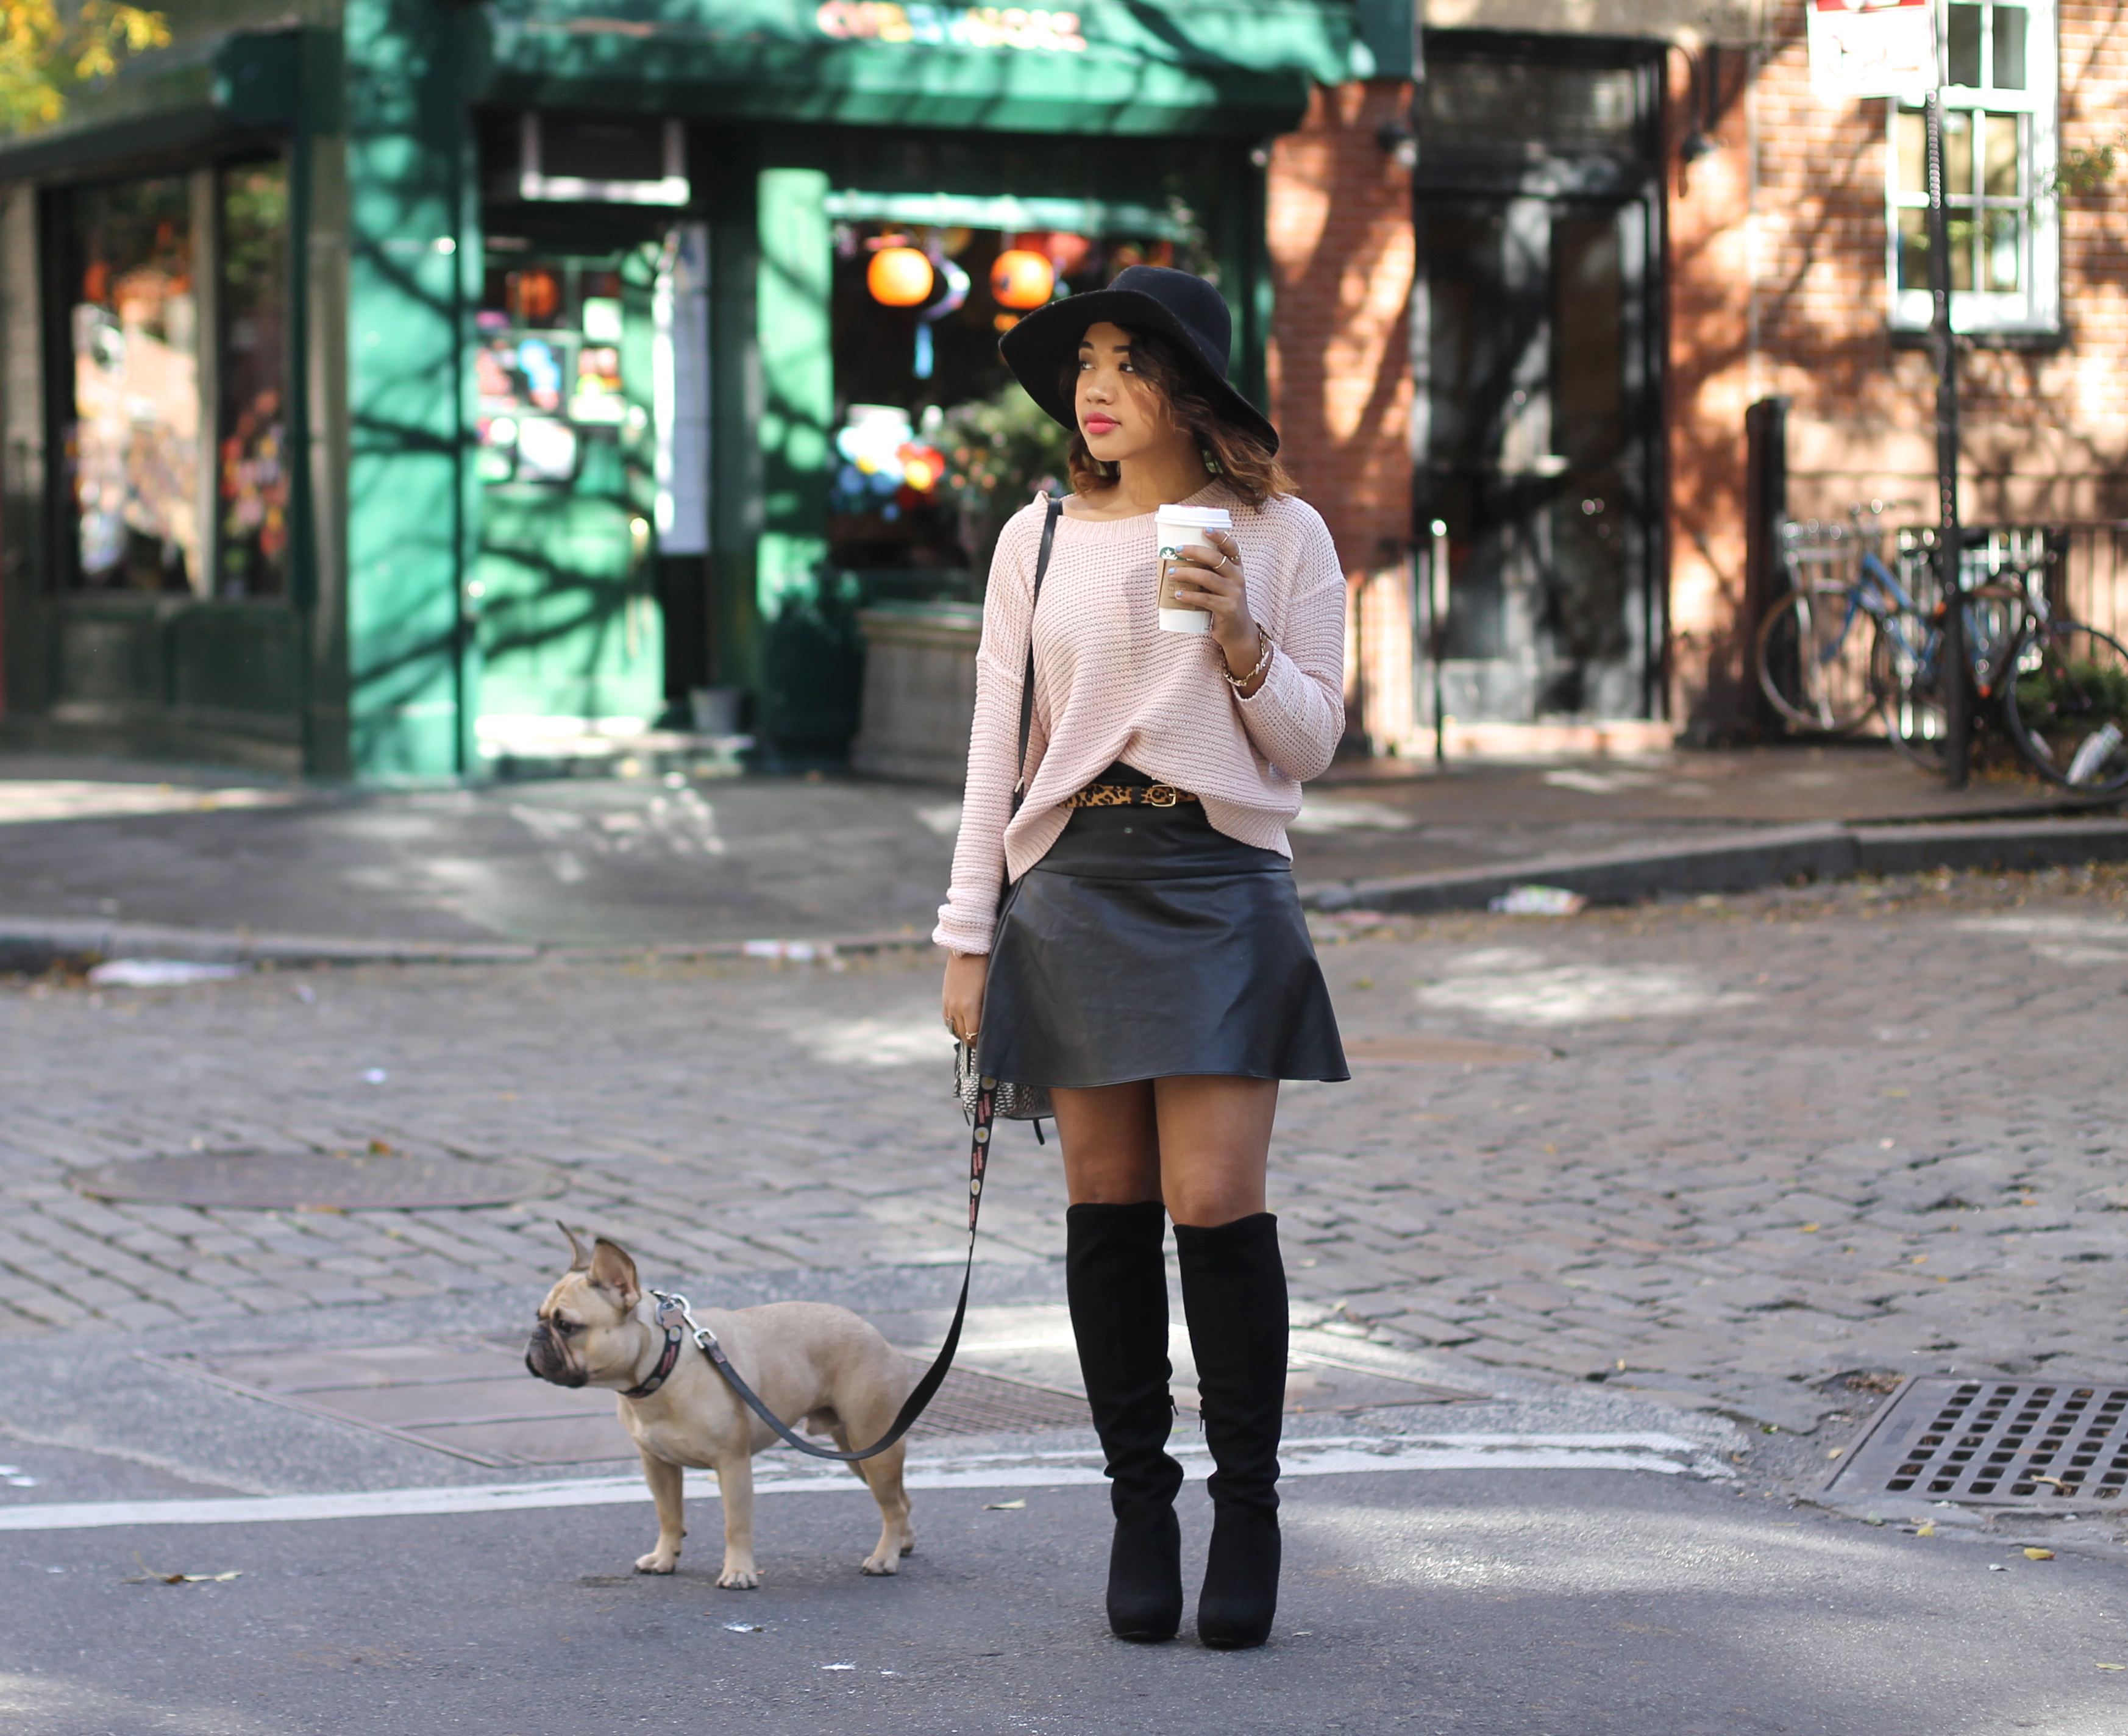 color me courtney pastels for fall fall pastels blush for fall pink pastel fall blush pastel color me courtney new york fashion blogger nyc fashion blogger nyc fashion blogger